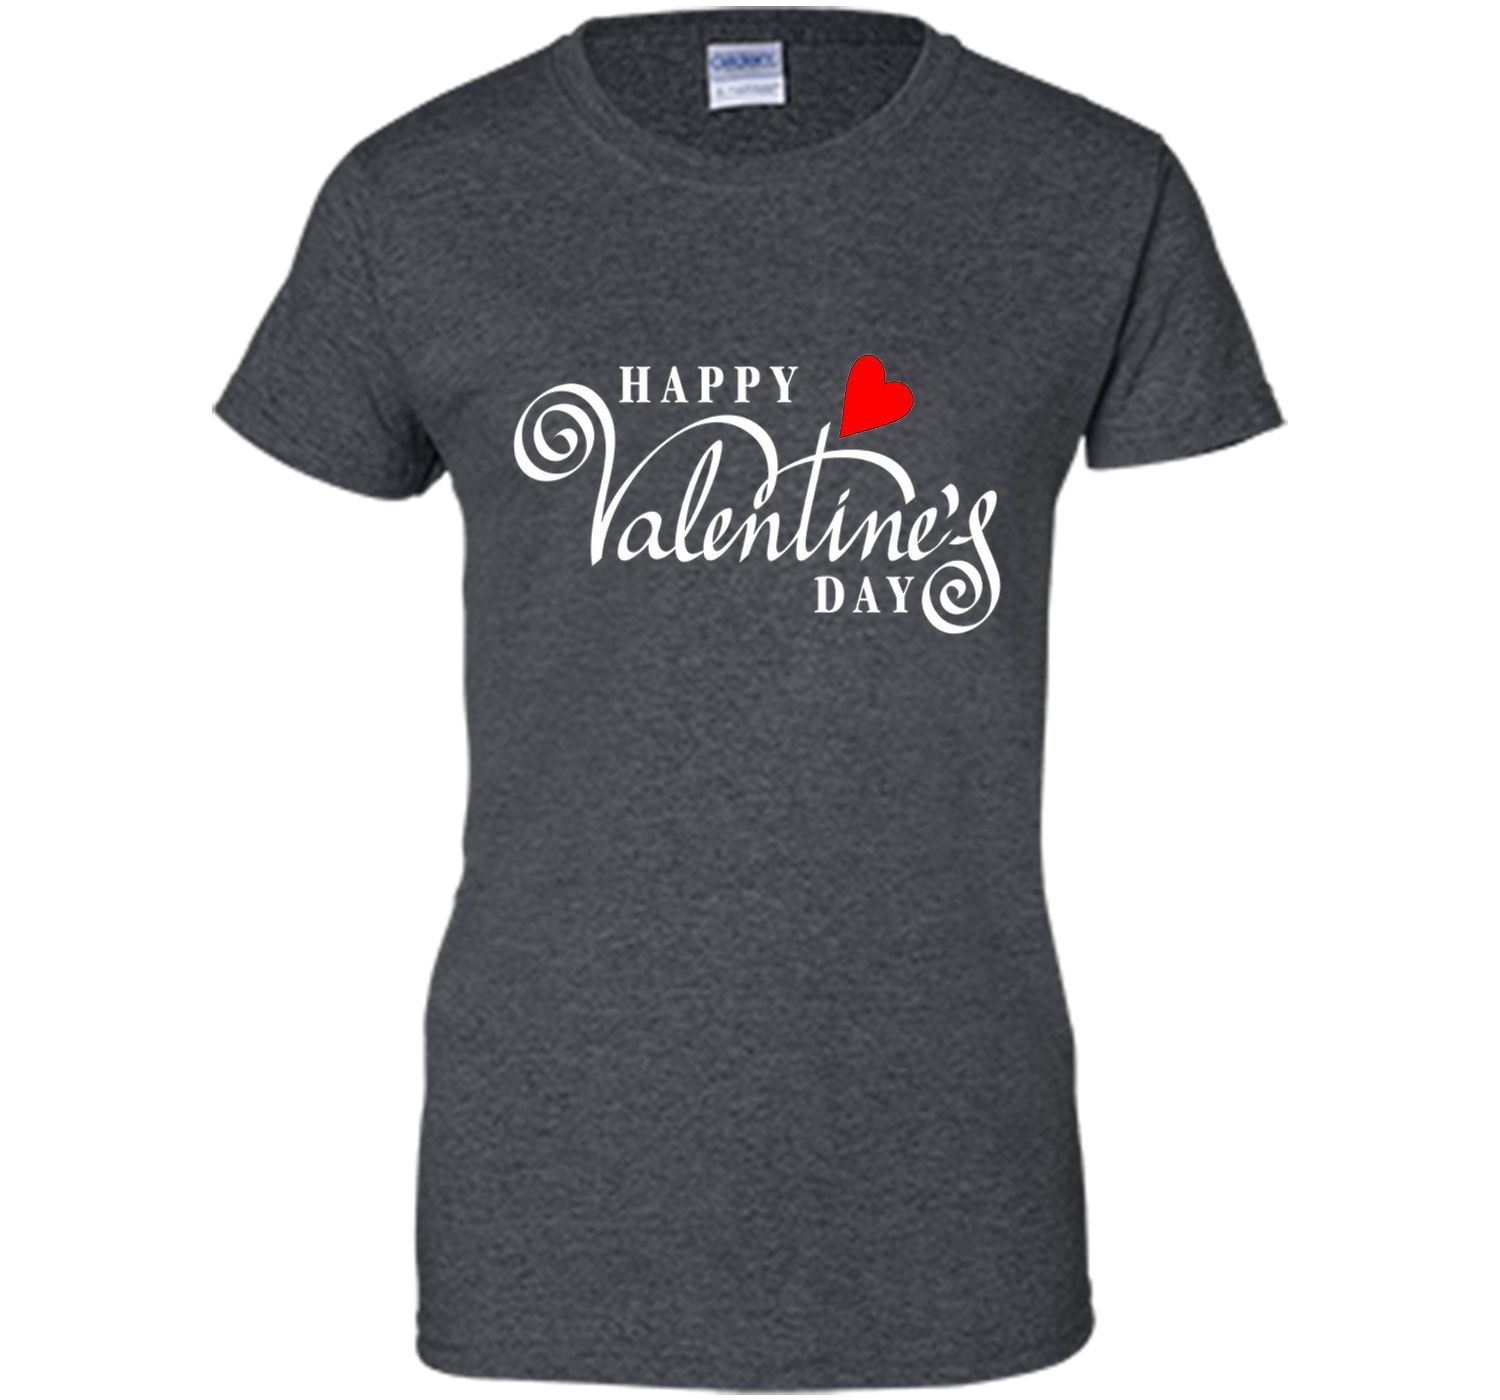 Happy Valentines Day T Shirt With Cool Cursive Font Heart